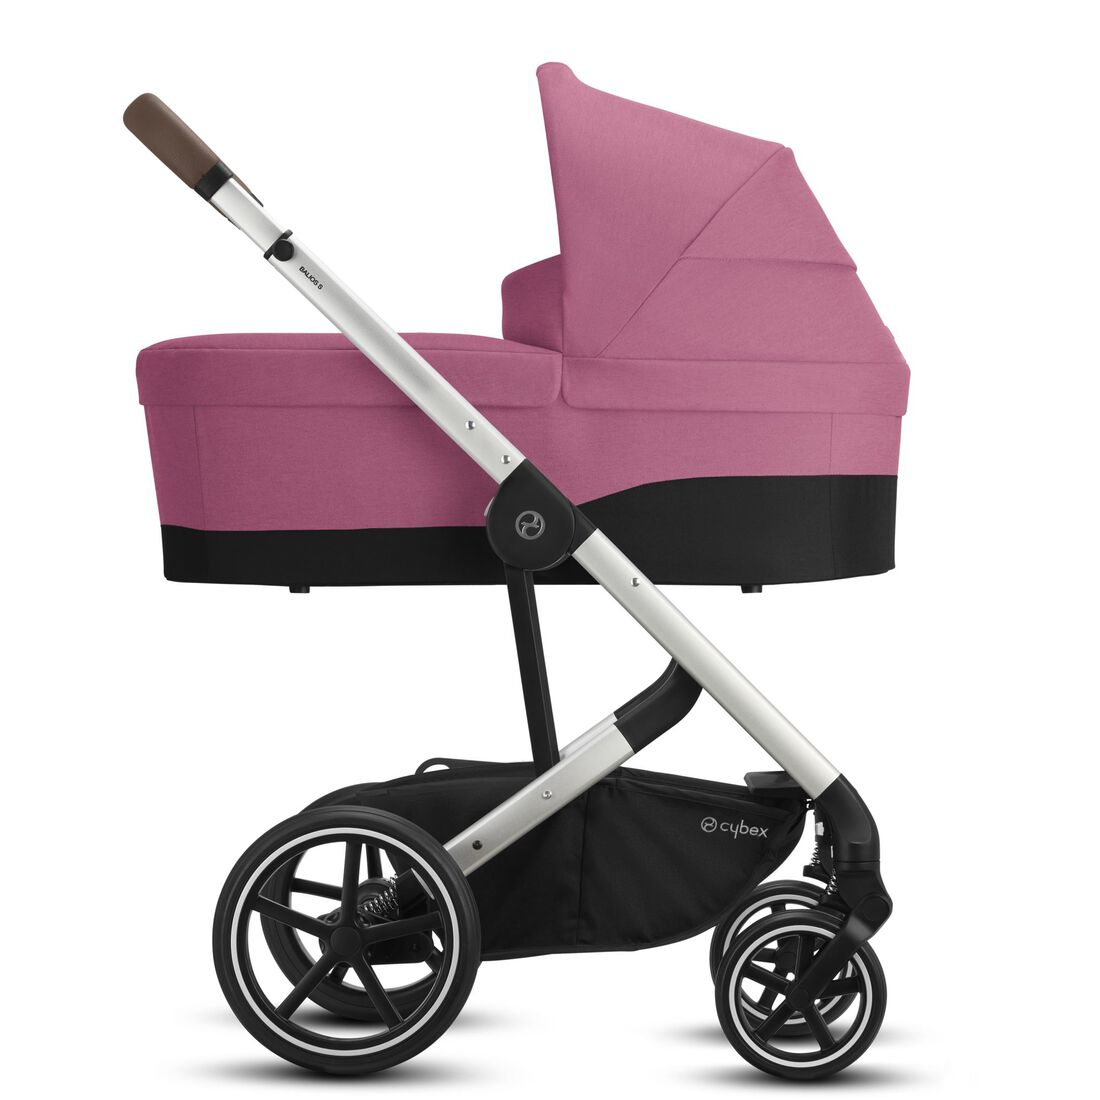 CYBEX Balios S Lux - Magnolia Pink (Silver Frame) in Magnolia Pink (Silver Frame) large image number 2